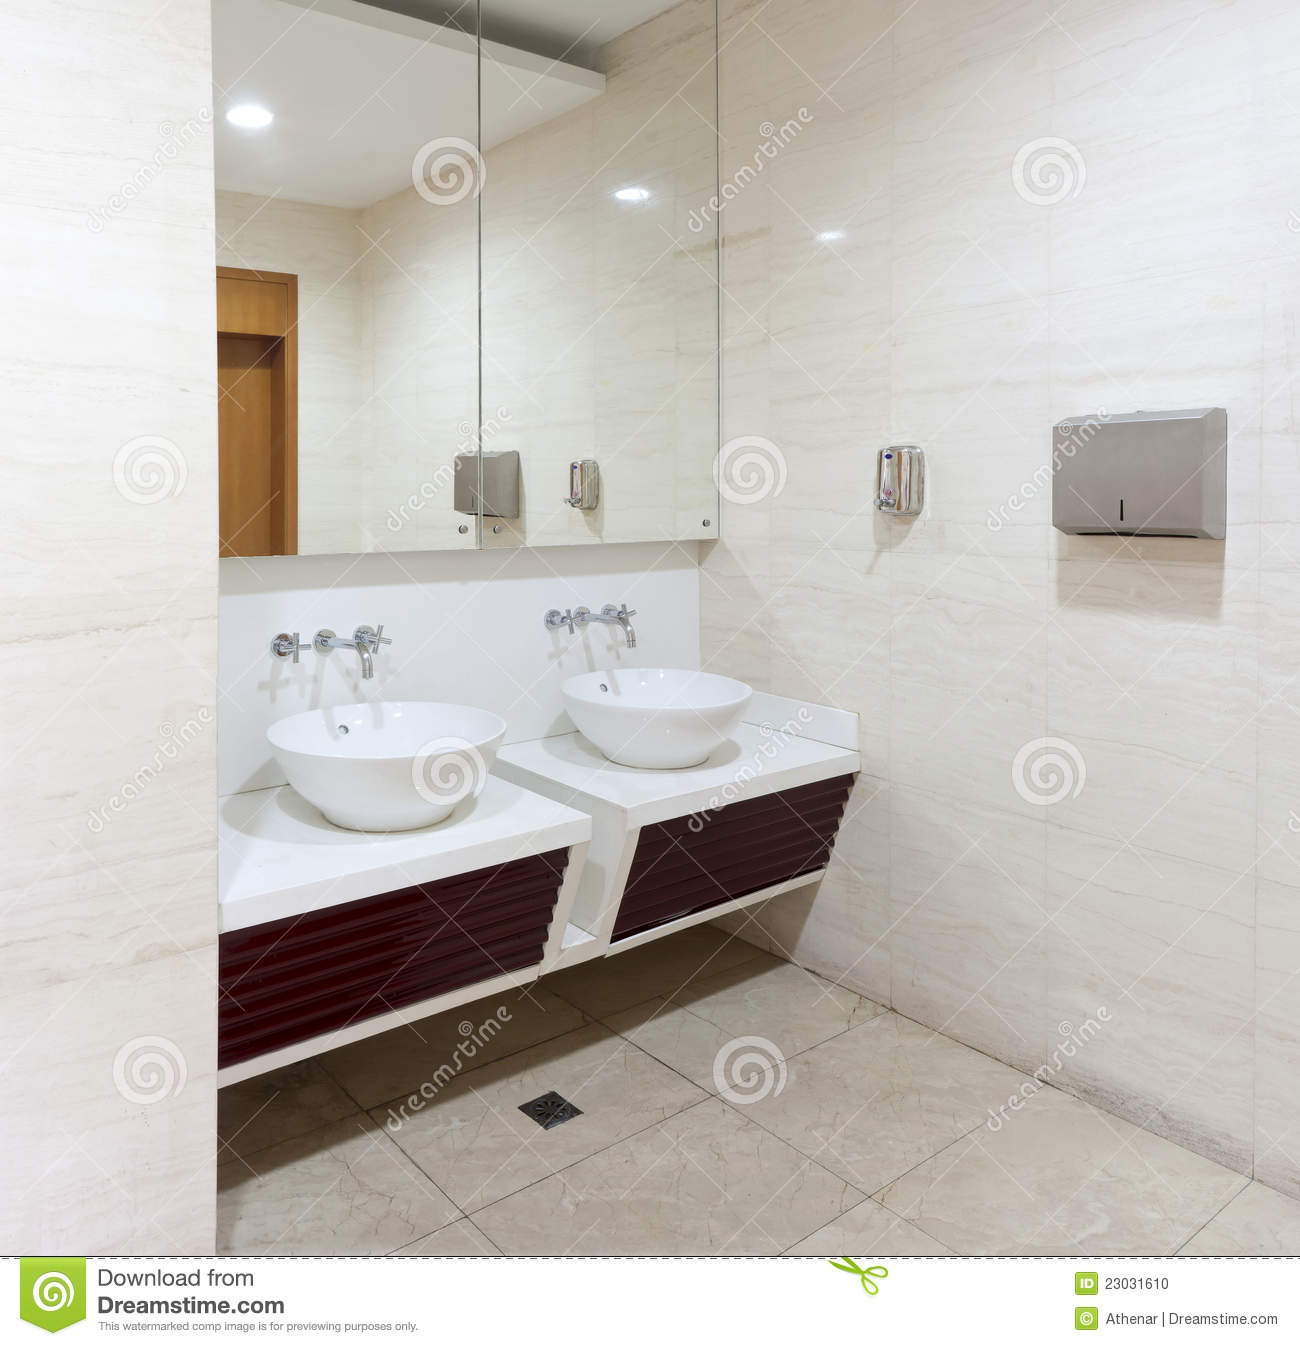 Royalty Free Stock Photo  Download Washbasins  Taps And Mirror In Public  Toilet. Washbasins  Taps And Mirror In Public Toilet Stock Photo   Image